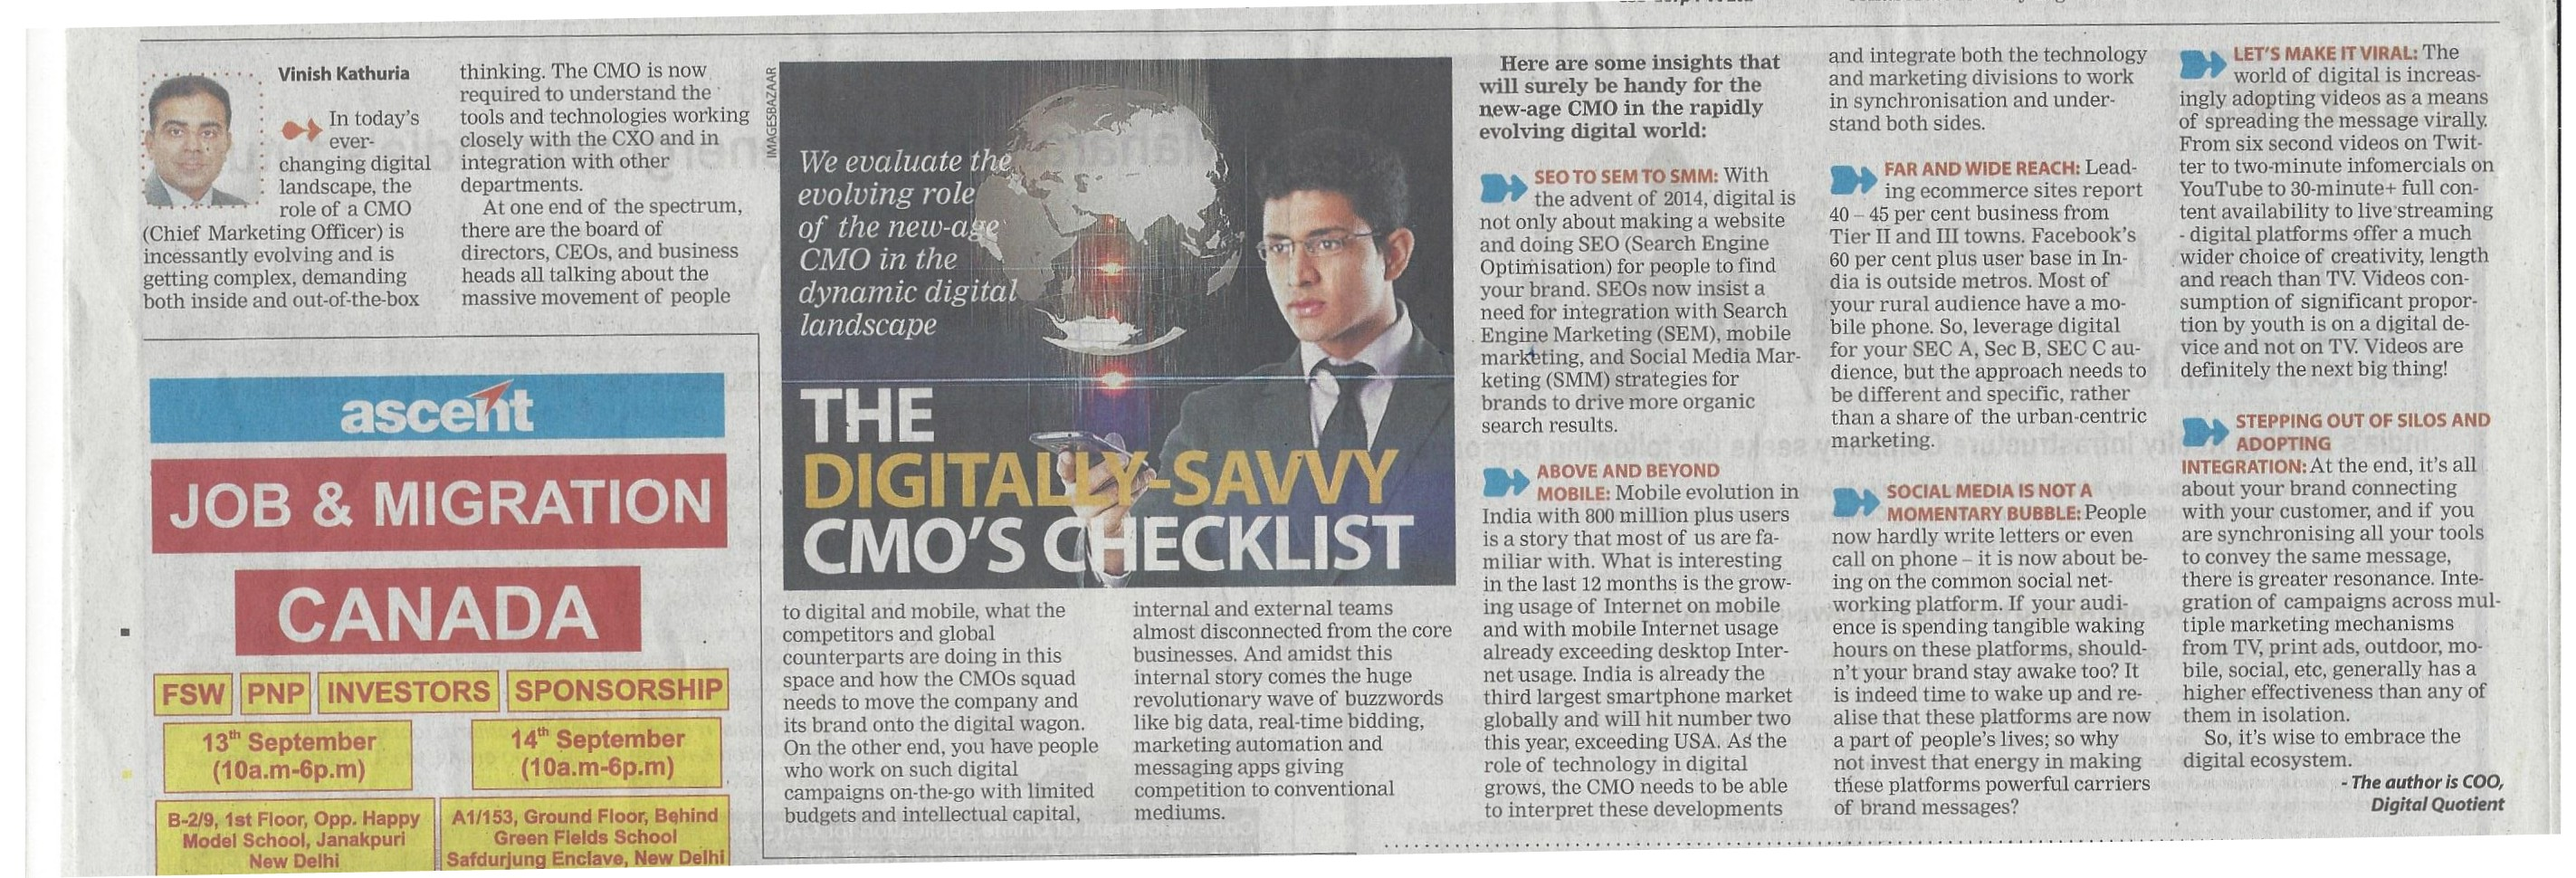 TOI Ascent, Page No. 4, 10th september